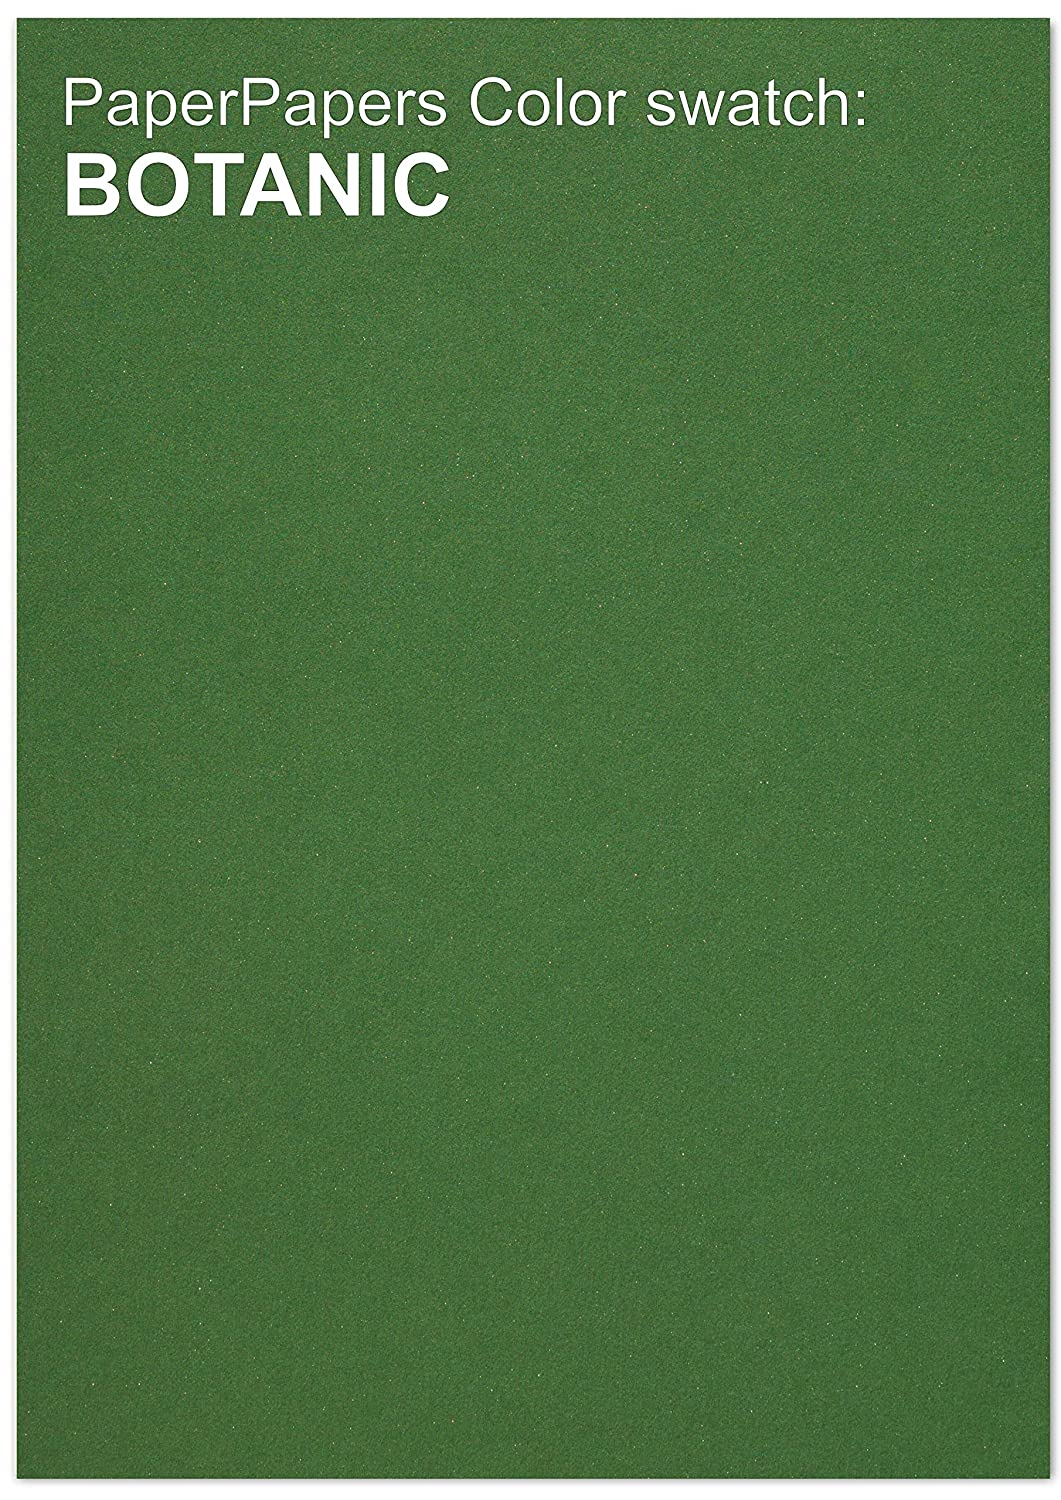 Green Botanic - 8-1/2-x-11 Everday lightweight Paper - 50-pk - 118 GSM (32/80lb Text) Quality LETTER size Metallic Multipurpose Paper - Professionals, Designers, Crafters and DIY Projects paper-papers 4336880119